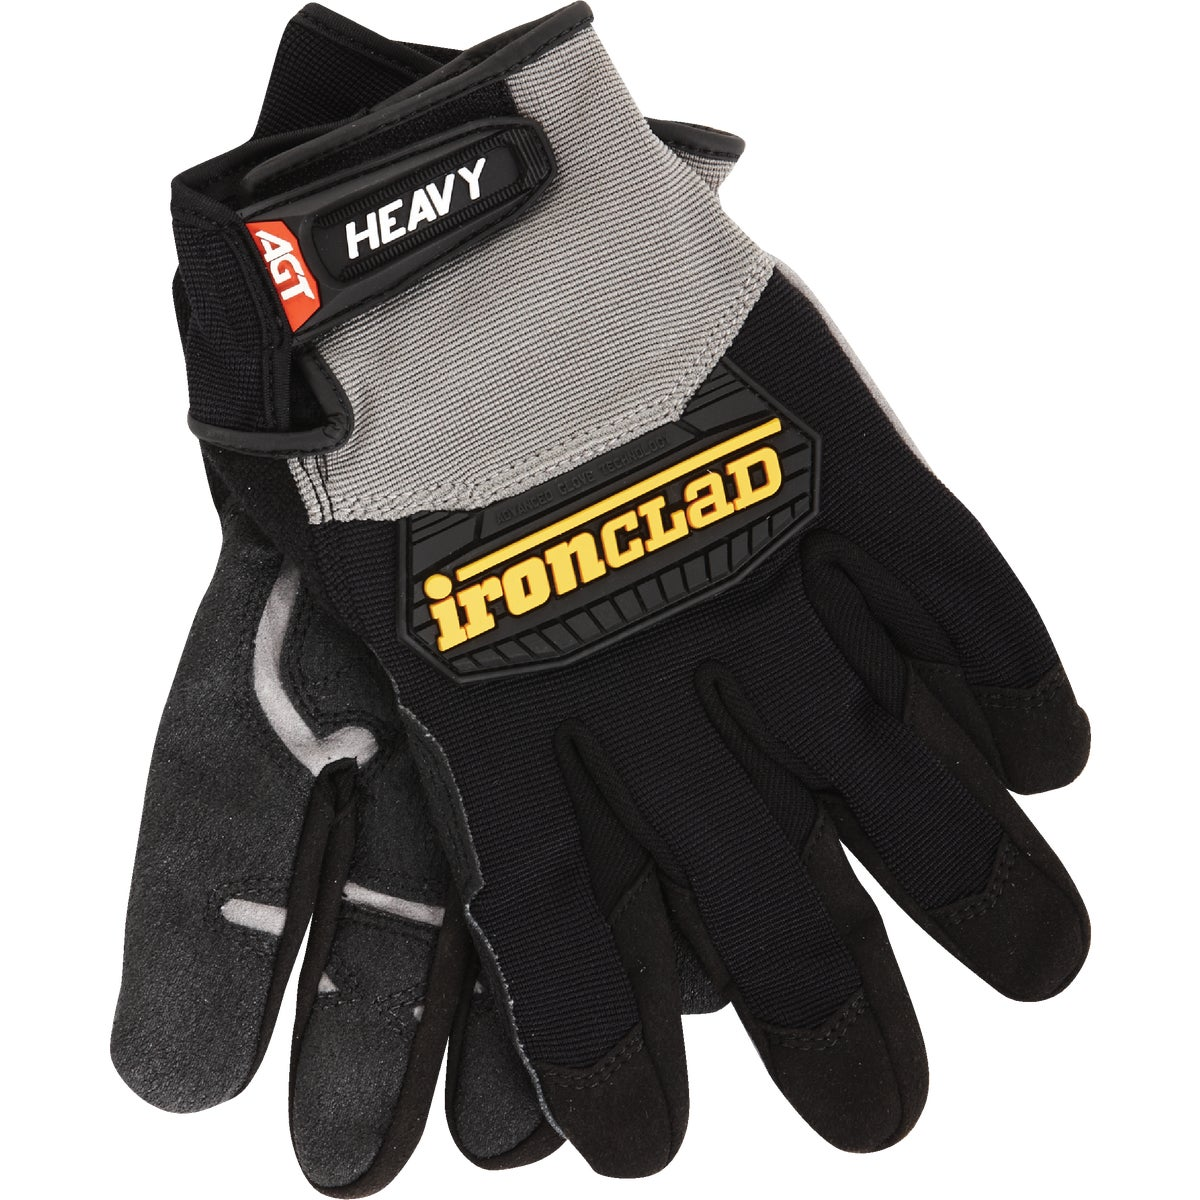 LRG HEAVY UTILITY GLOVE - HUG2-04-L by Ironclad Performance